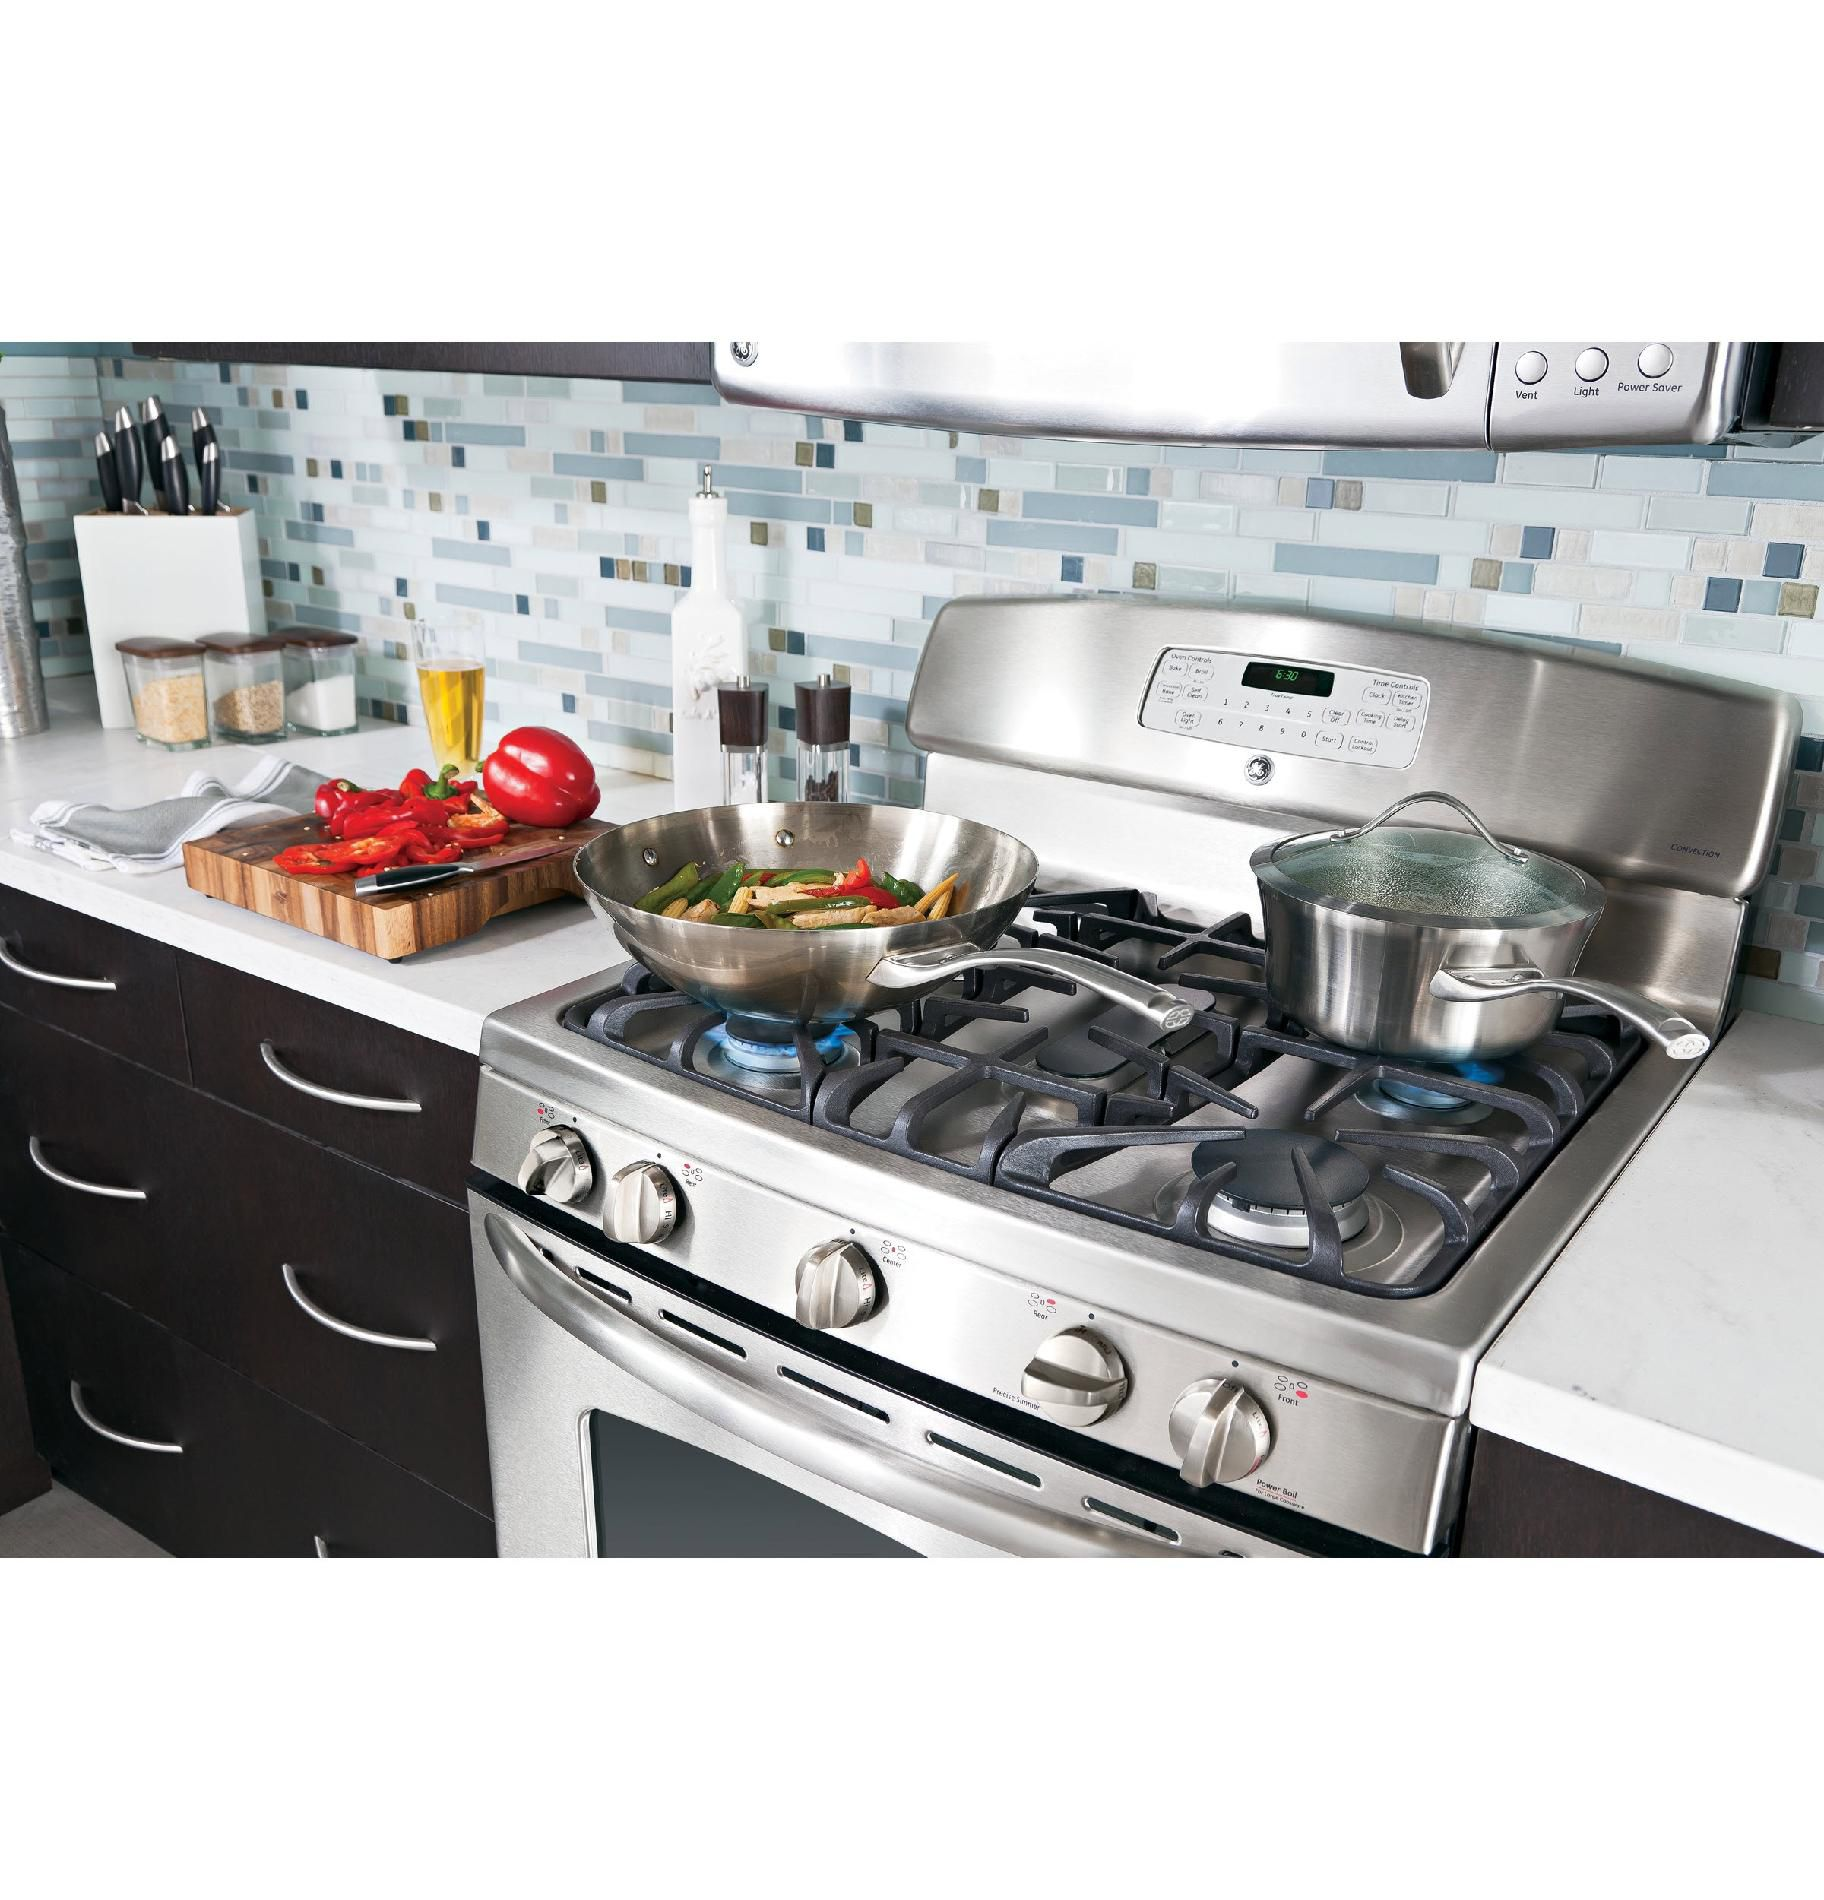 GE 5.0 cu. ft. Freestanding Gas Range w/ Convection - Stainless Steel